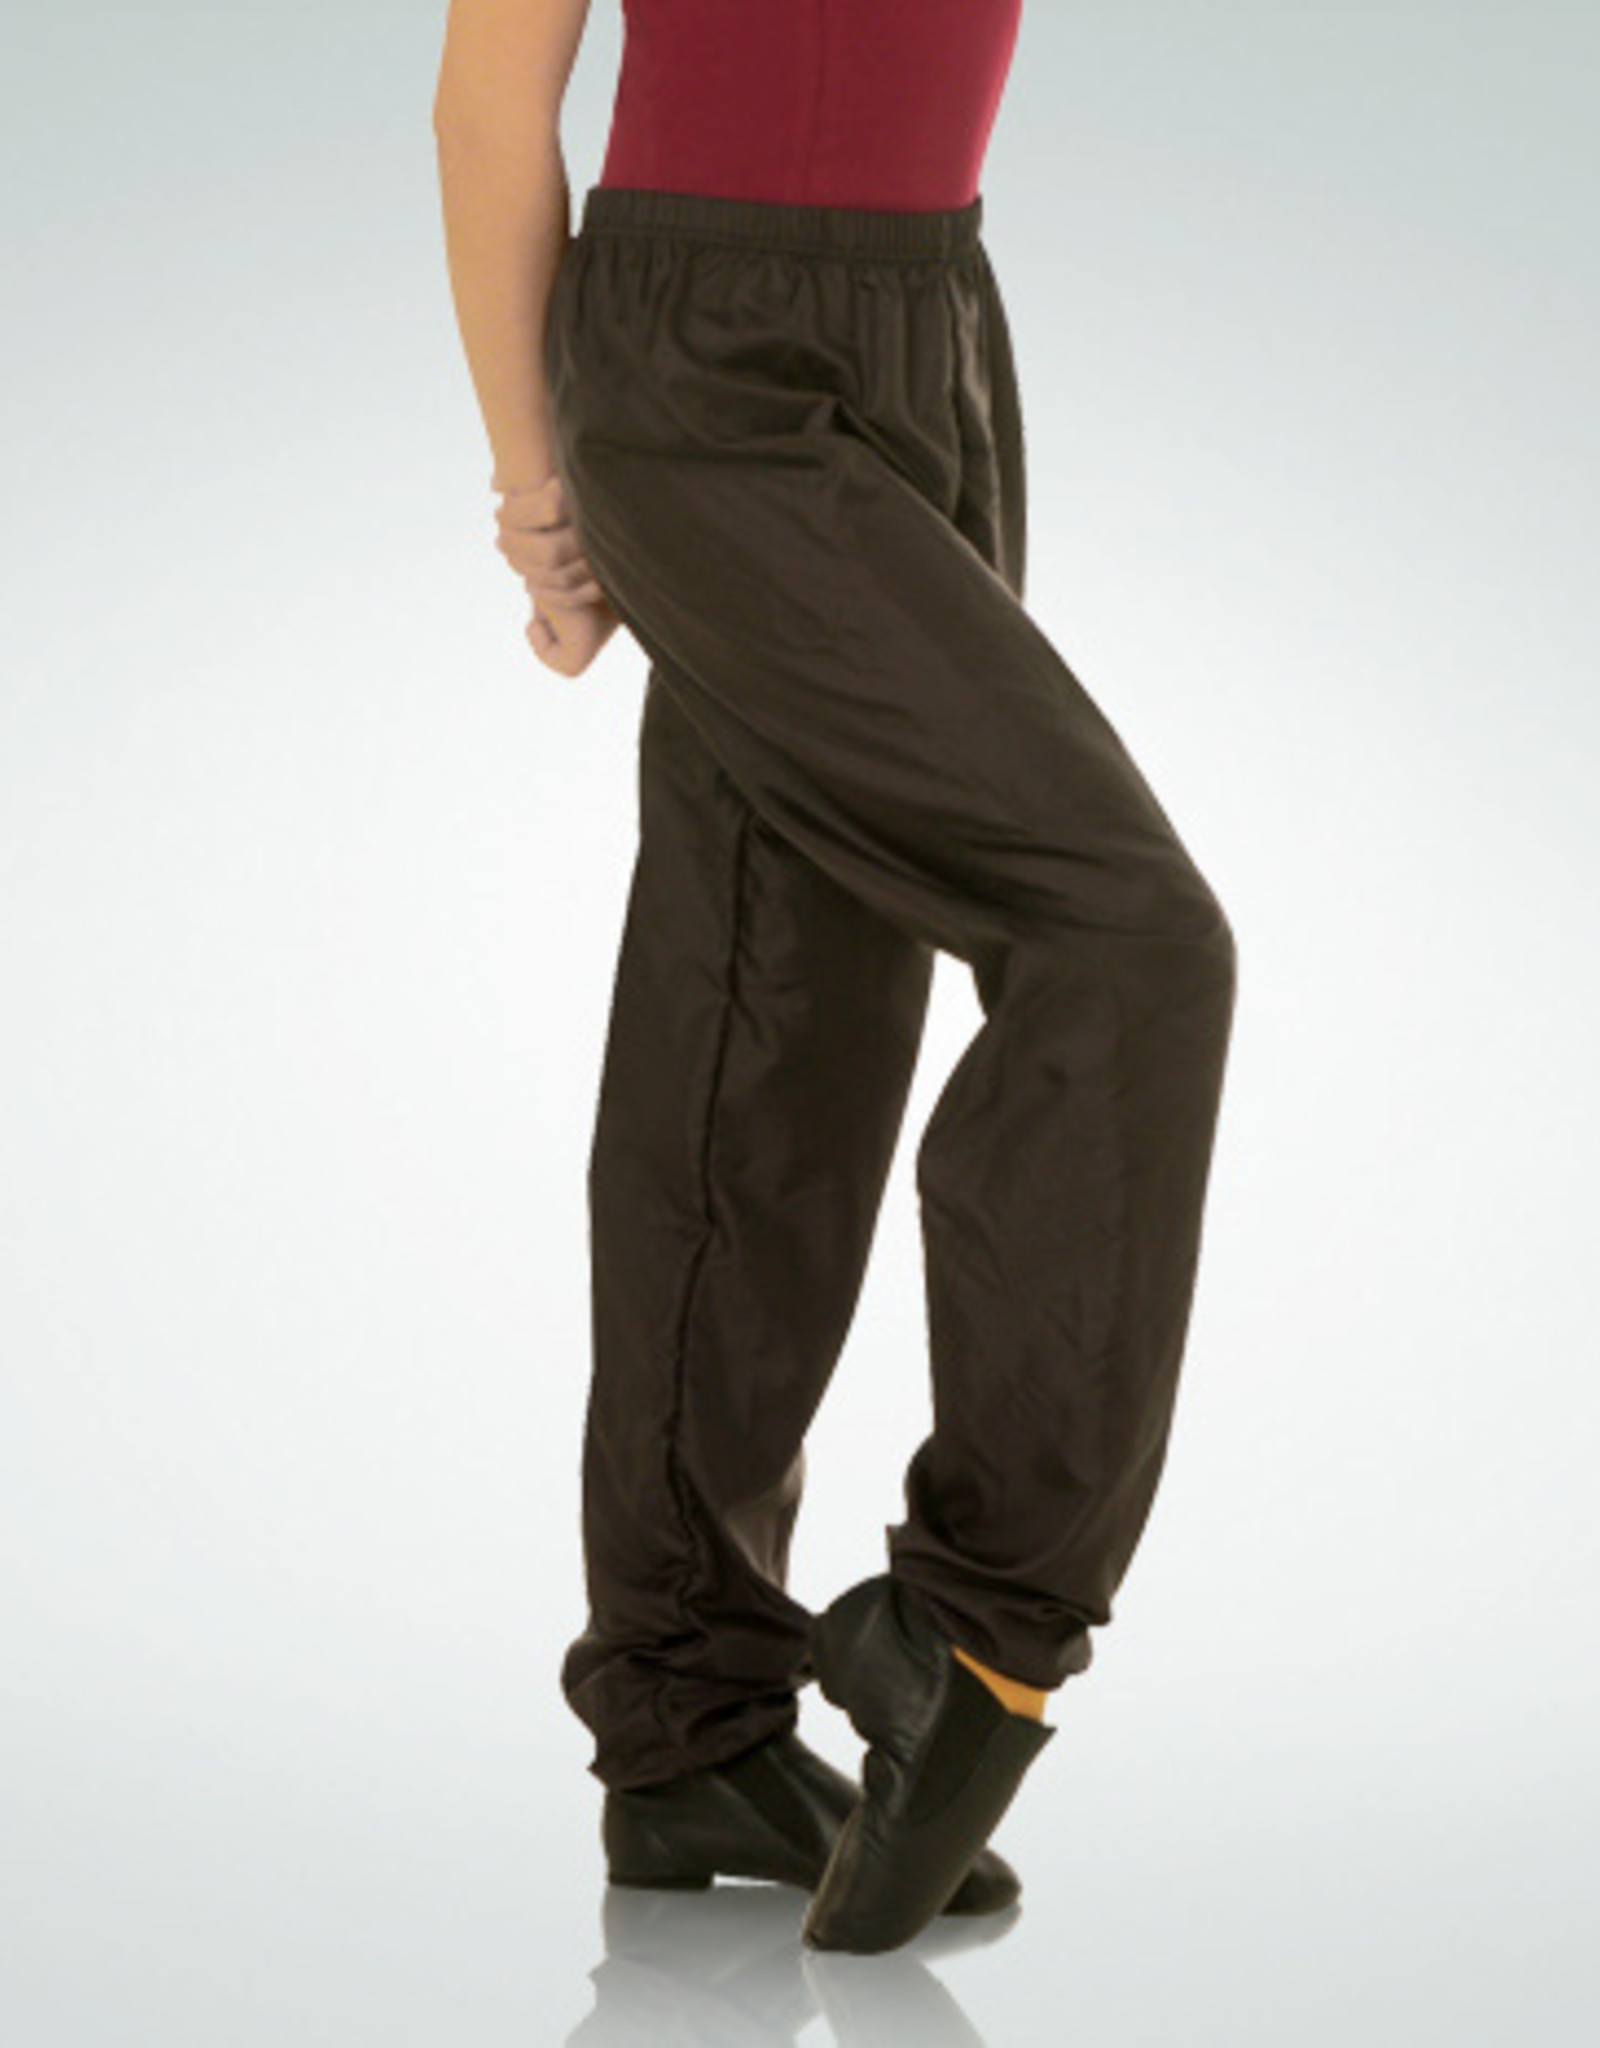 BODY WRAPPERS WAXED PANTS (701)